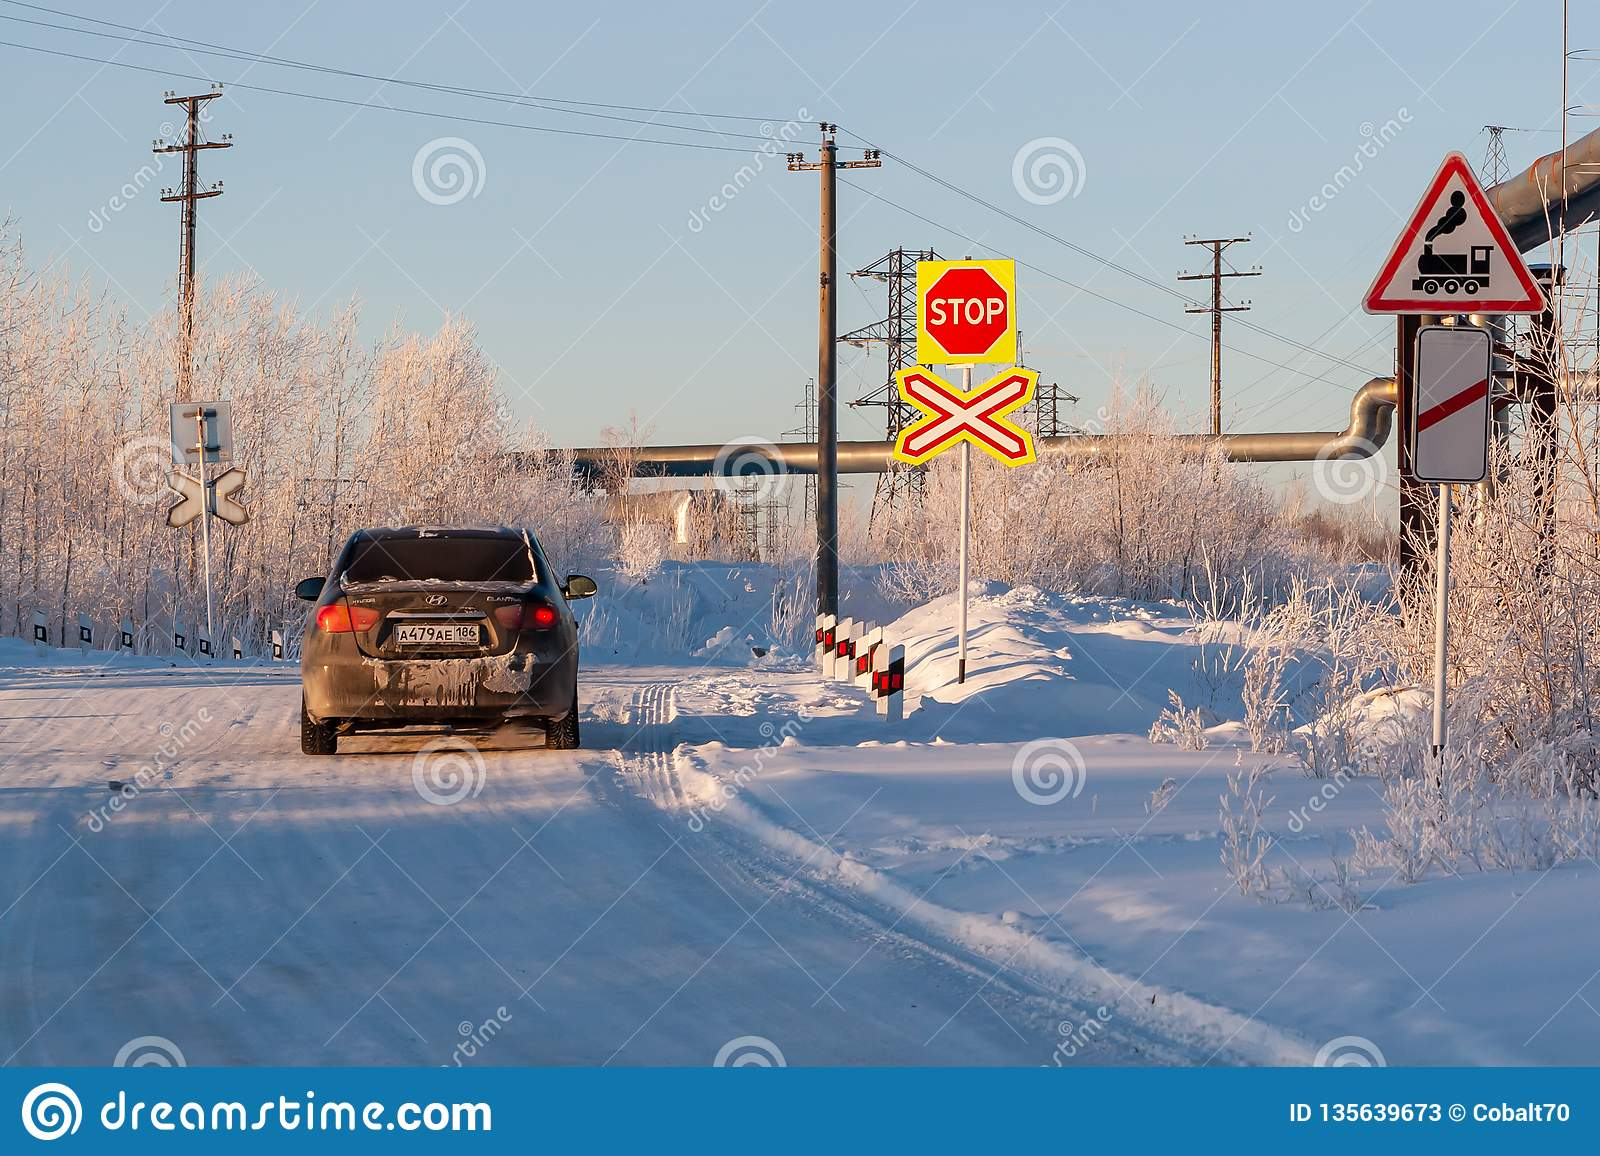 Railway crossing in winter. Road sign